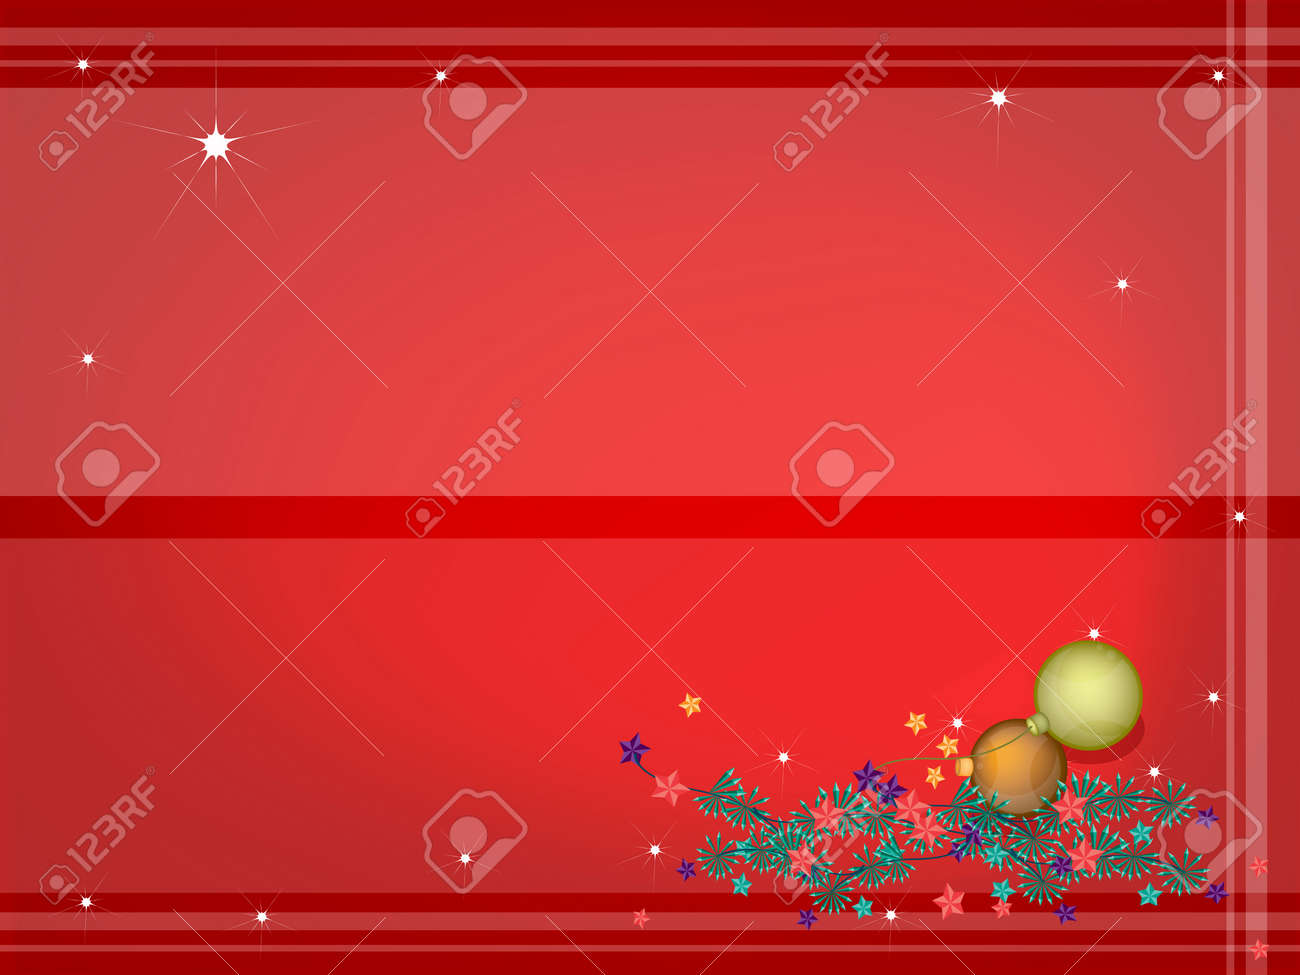 Red Abstract Background of Lovely Christmas Balls or Christmas Ornaments Decorated on Christmas Tree Branches Stock Vector - 24219501